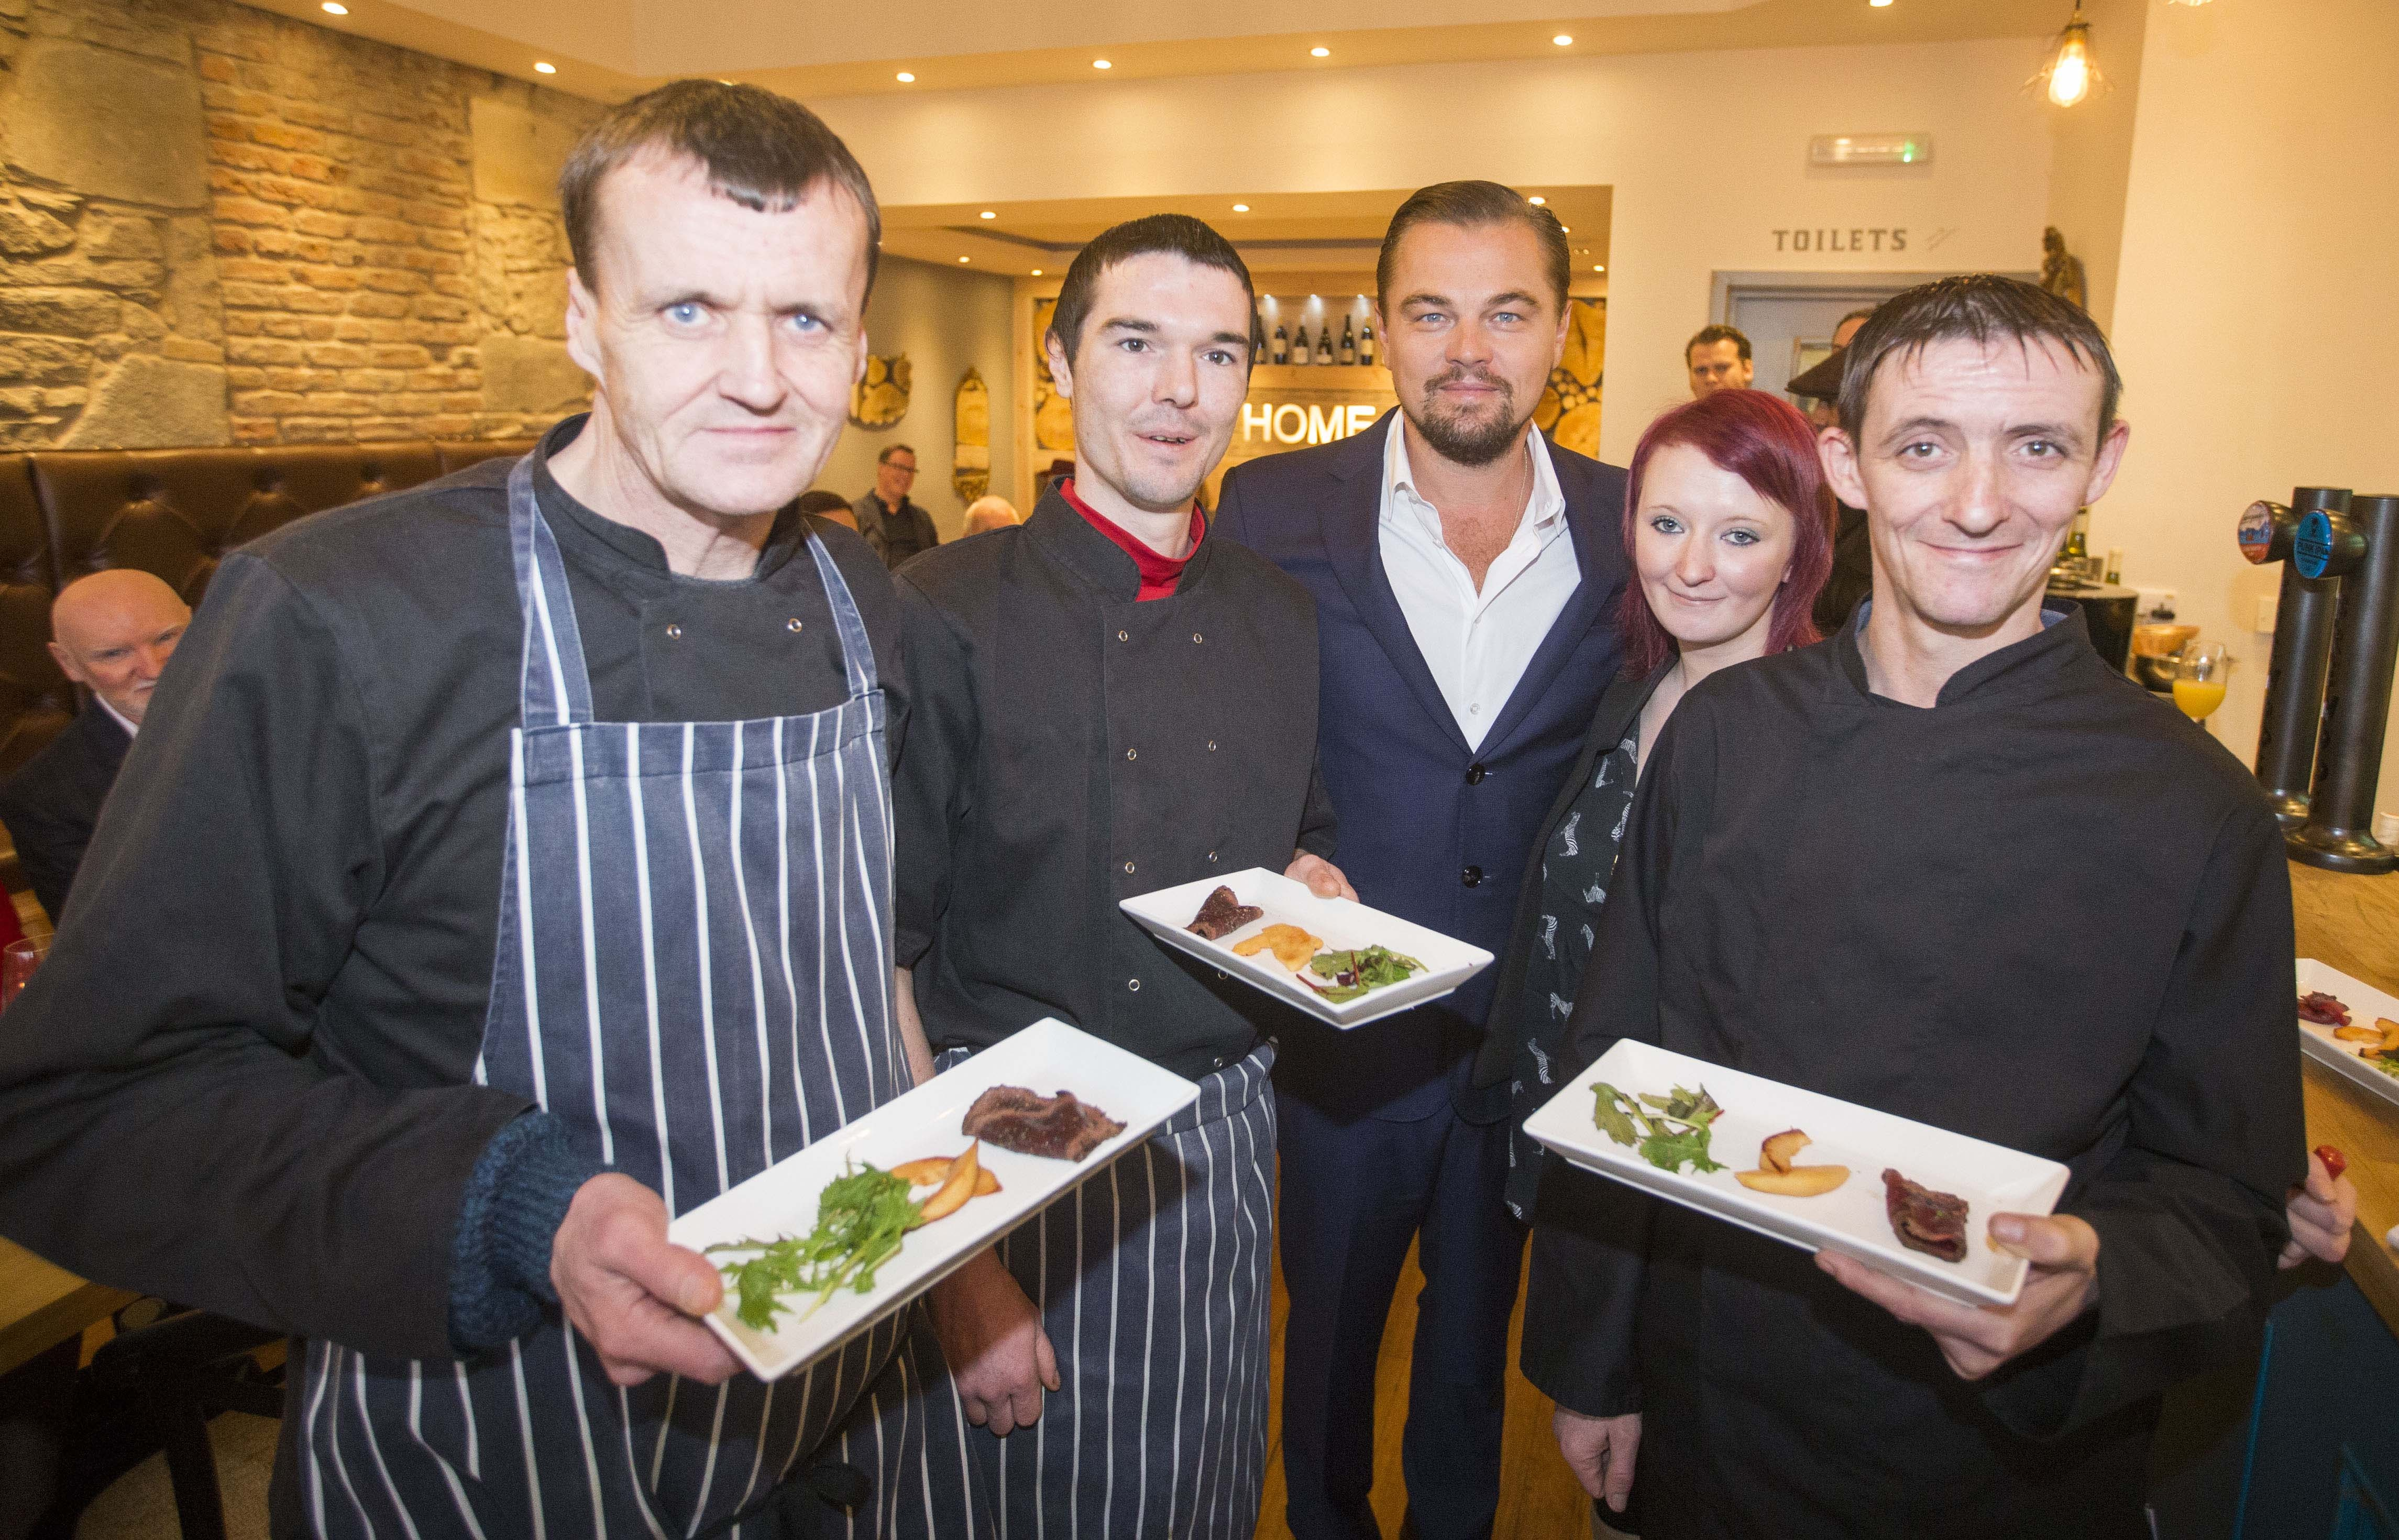 Hollywood actor Leonardo DiCaprio poses with formerly homeless staff (left to right) Colin Childs, Joe Hart, Biffy Mackay and Sonny Murray helped prepare lunch for DiCaprio and guests alongside acclaimed chef and Home co-founder Dean Gassabi (not pictured) at Social Bite restaurant, Home on November 17, 2016 in Edinburgh, Scotland.